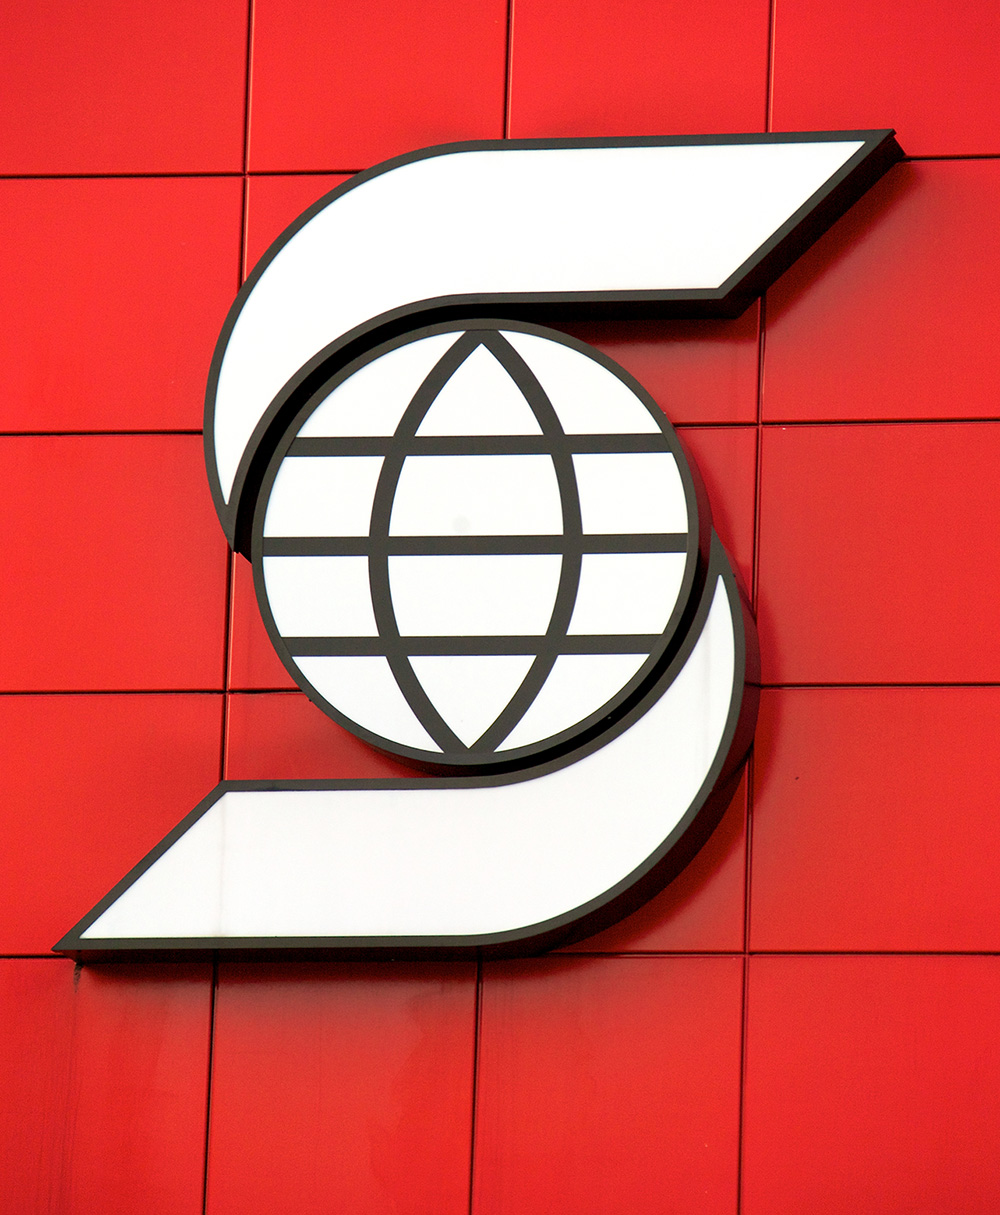 Scotiabank's current logo was adopted in 1975